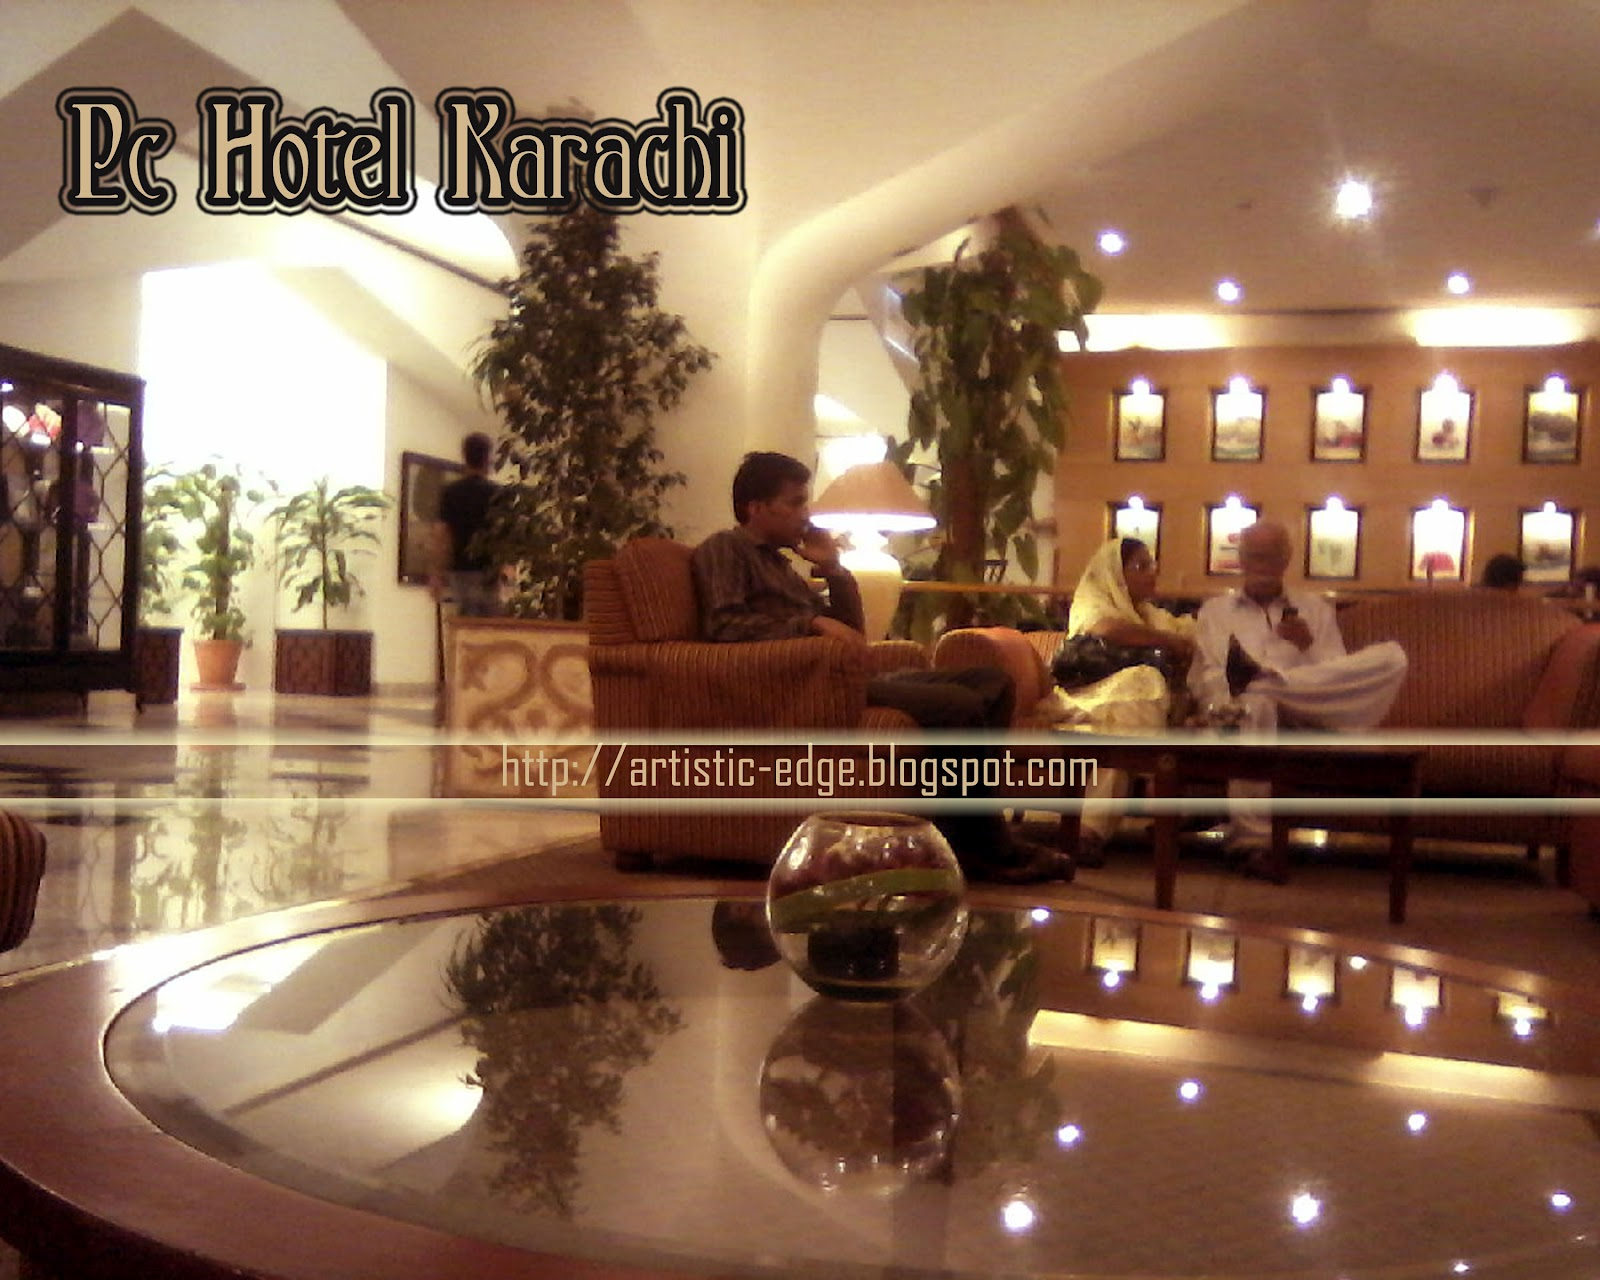 Best hotel in karachi for dating